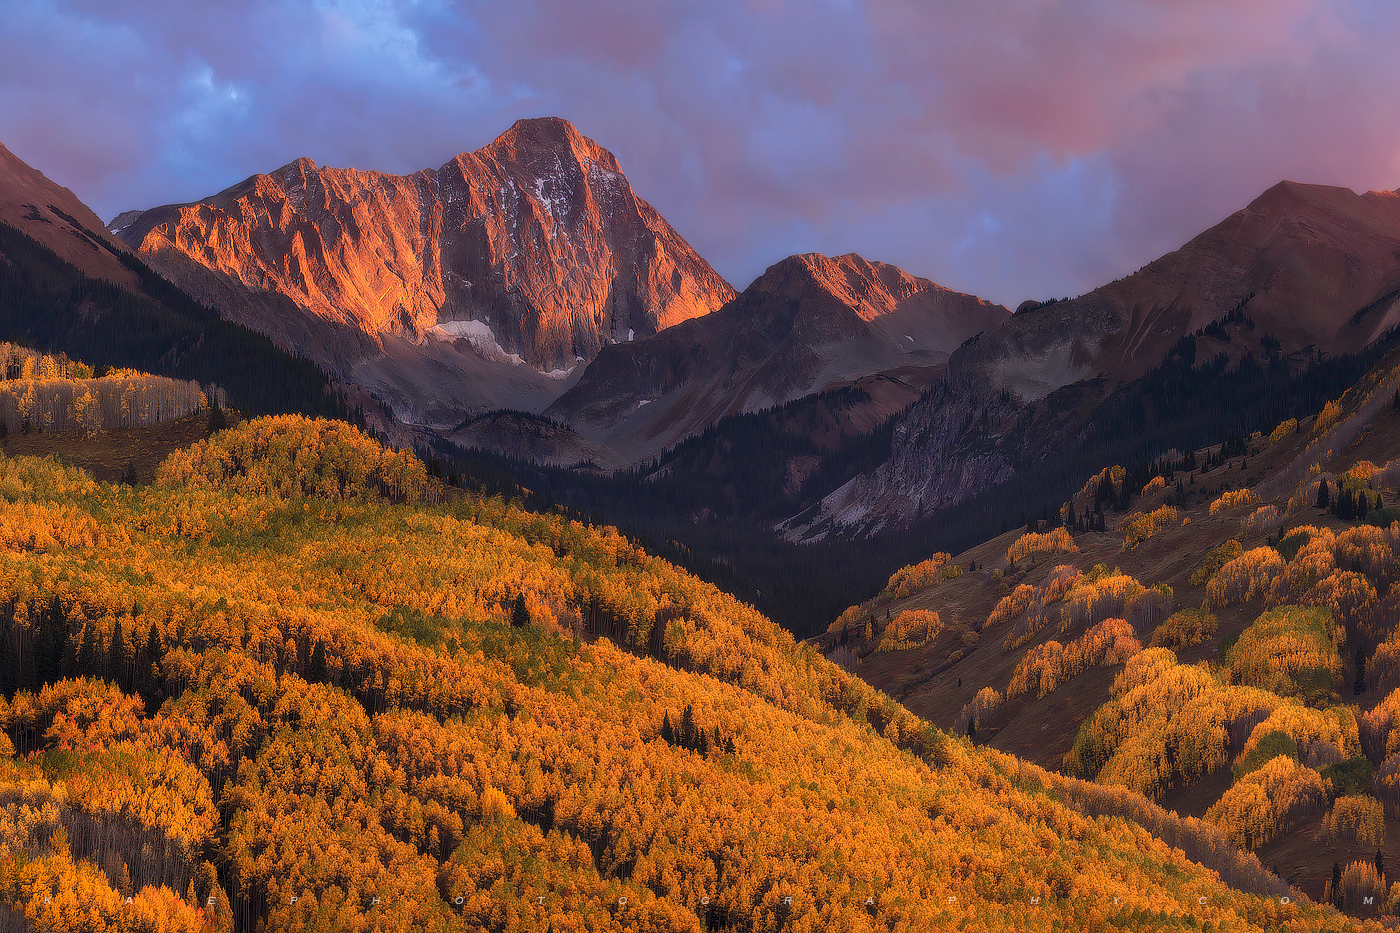 The great 14er, Capitol Peak receives some evening alpine glow from the west.